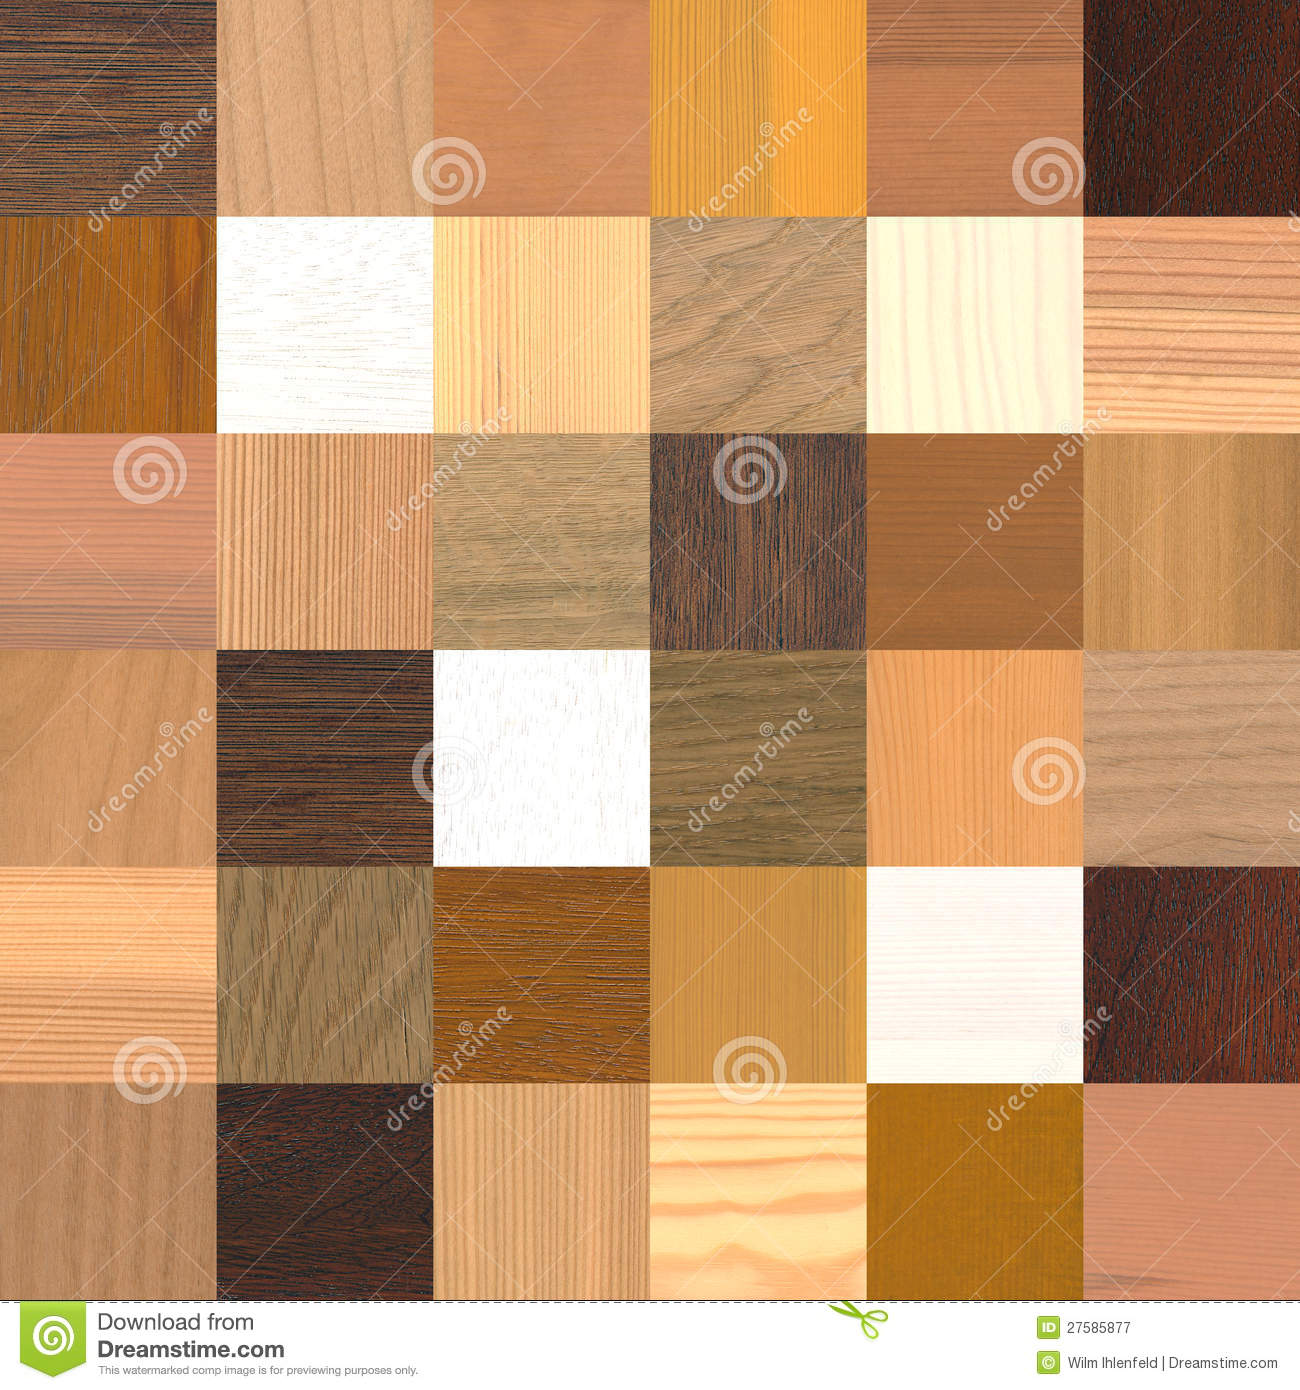 36 different wood samples royalty free stock photography image 27585877. Black Bedroom Furniture Sets. Home Design Ideas